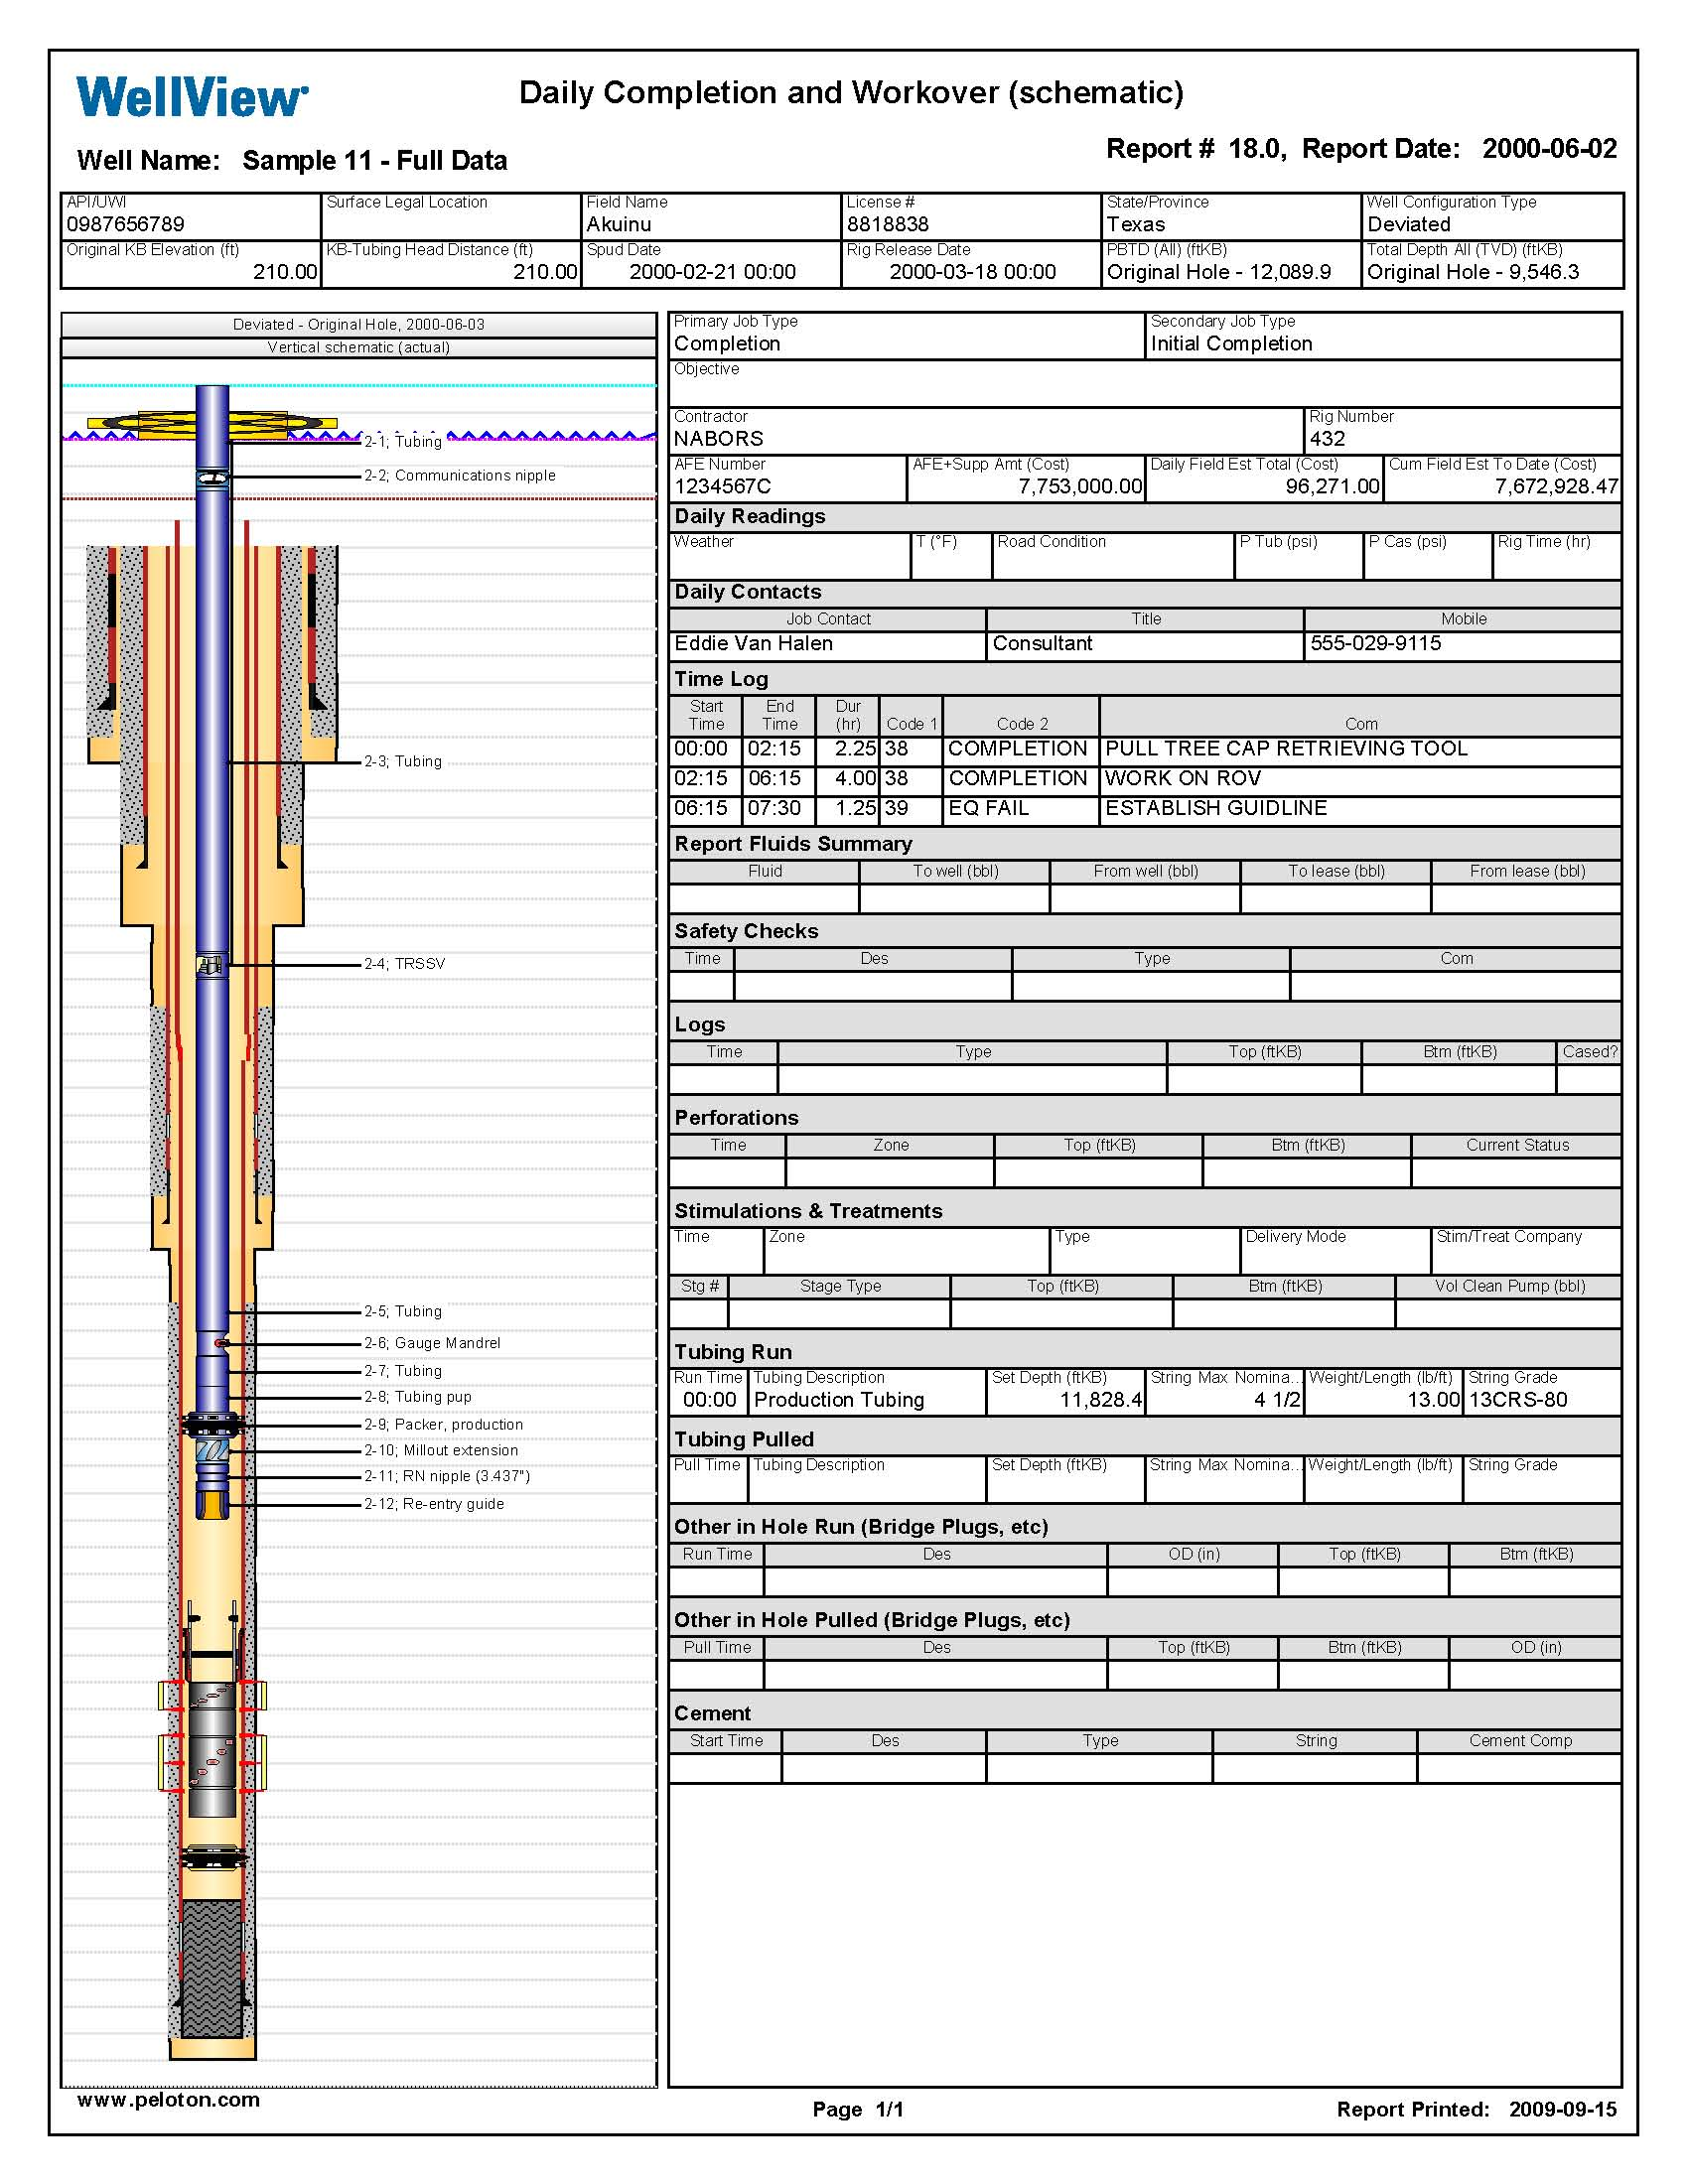 Complete Well Summary Daily Completion and Workover (schematic) ...